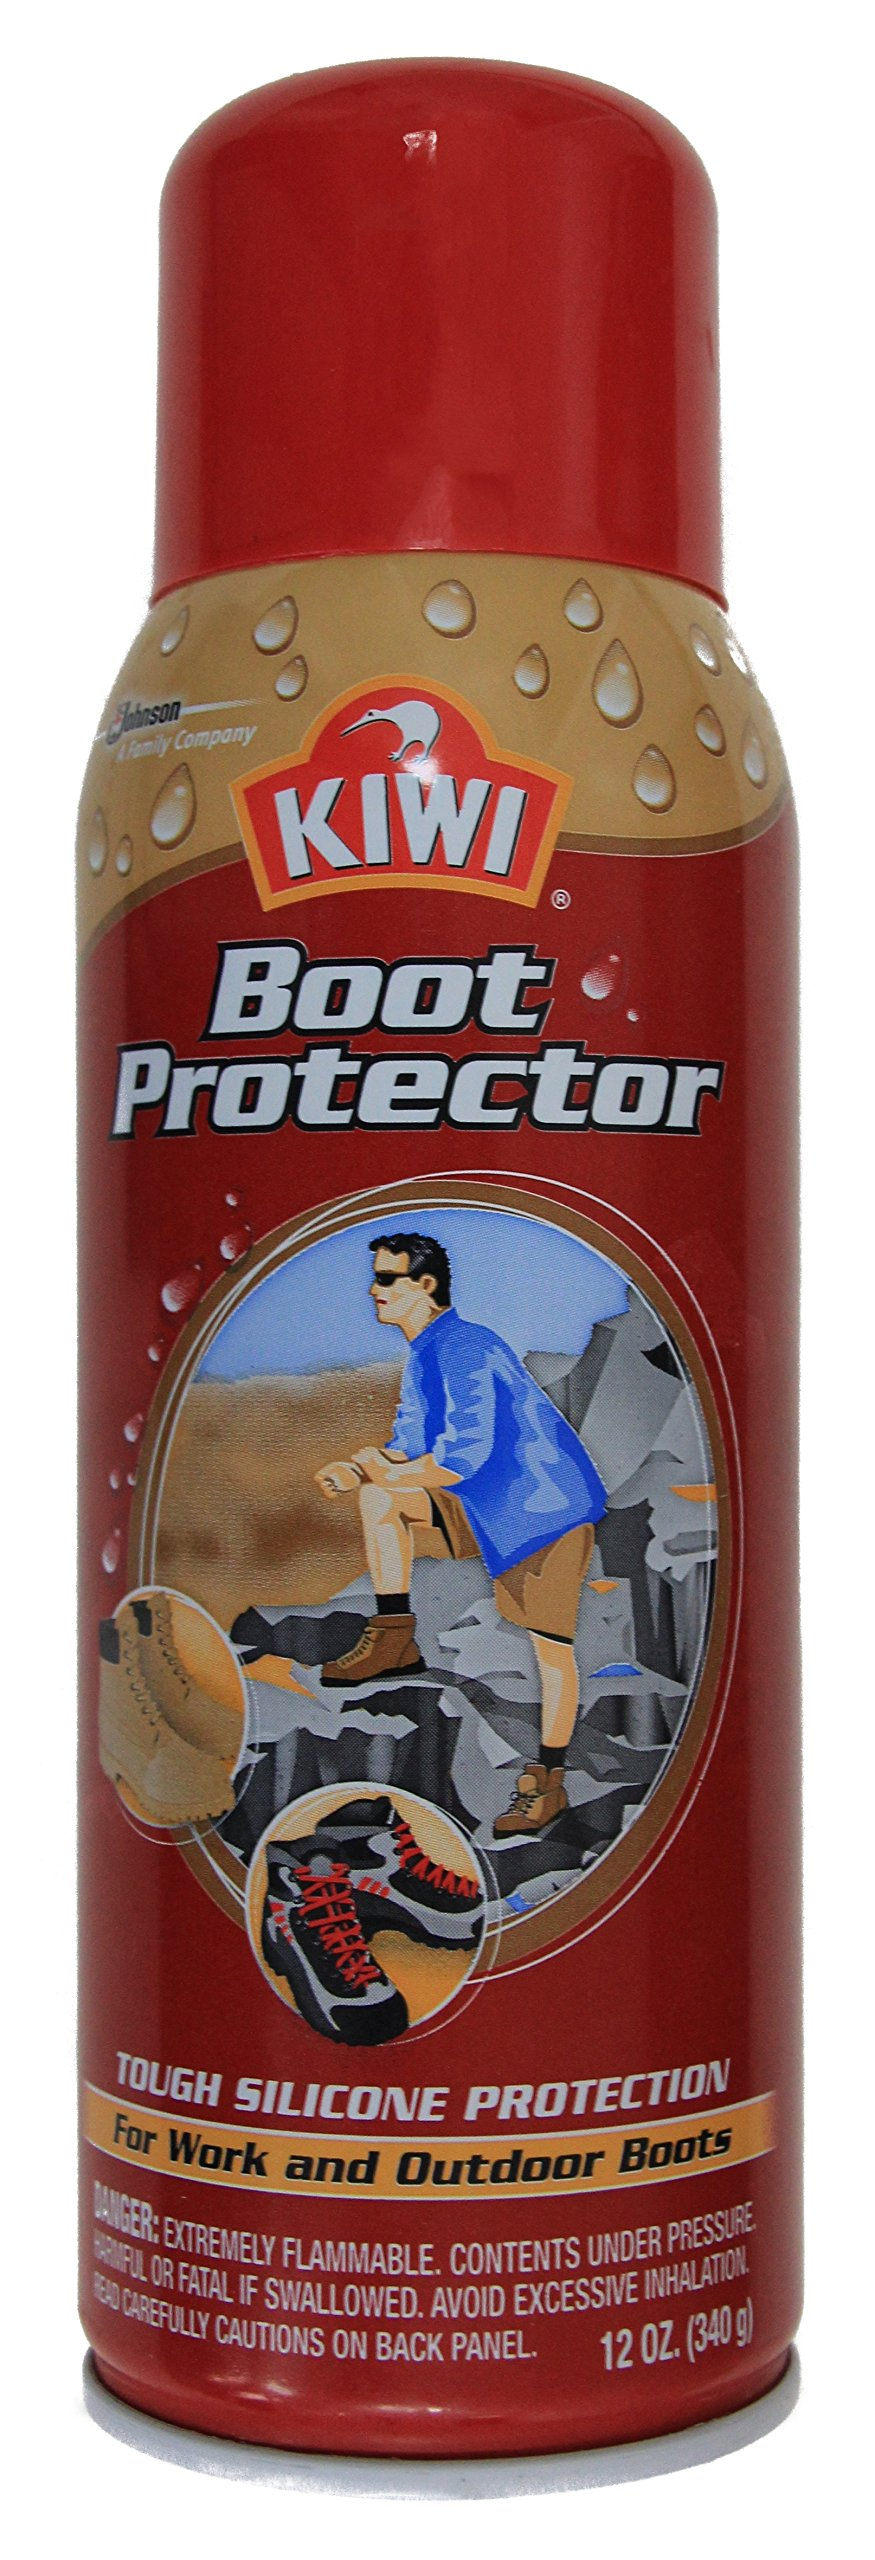 Kiwi Camp Dry Boot Protector, 12 oz., 12 Pack